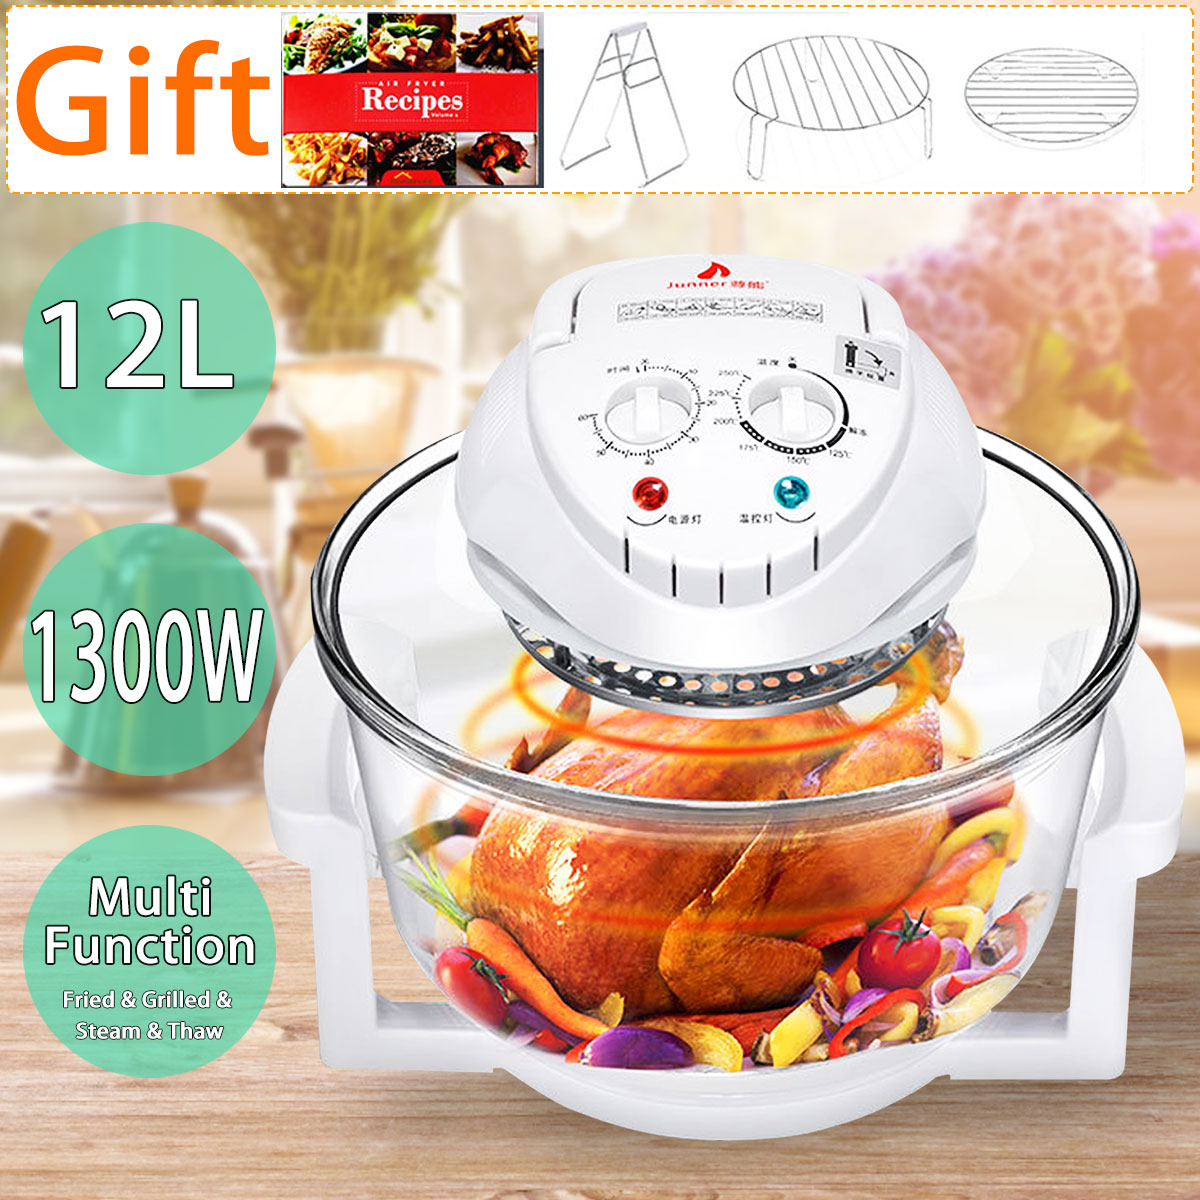 1300W 12L Multifunction Conventional Infrared Oven Roaster Air Fryer Turbo Electric Cooker BBQ Bake Cook With Recipe 110V-220V